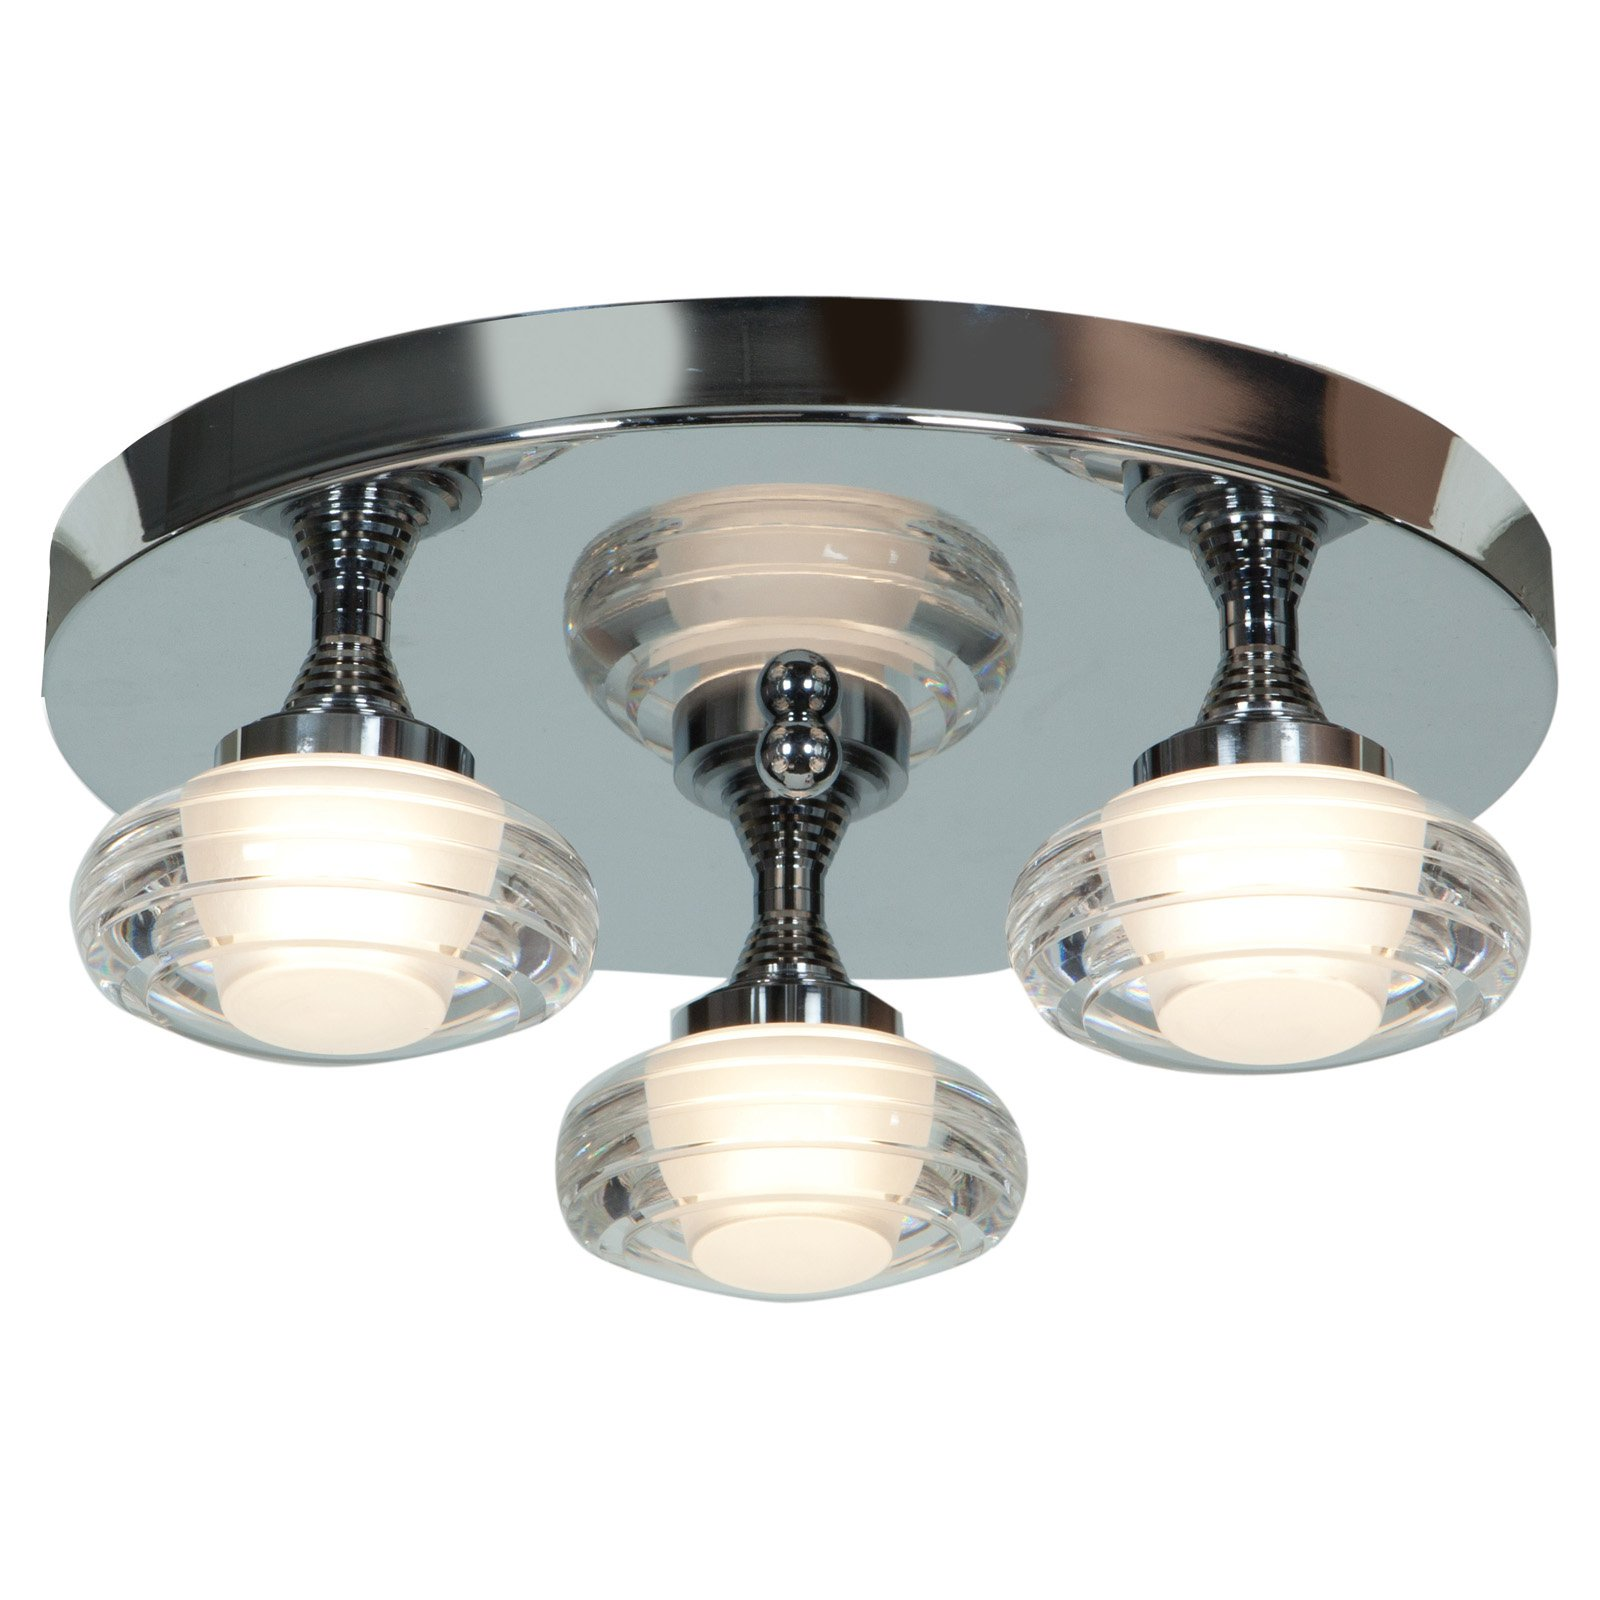 Access Lighting Optix 6397LED Flush Mount by Access